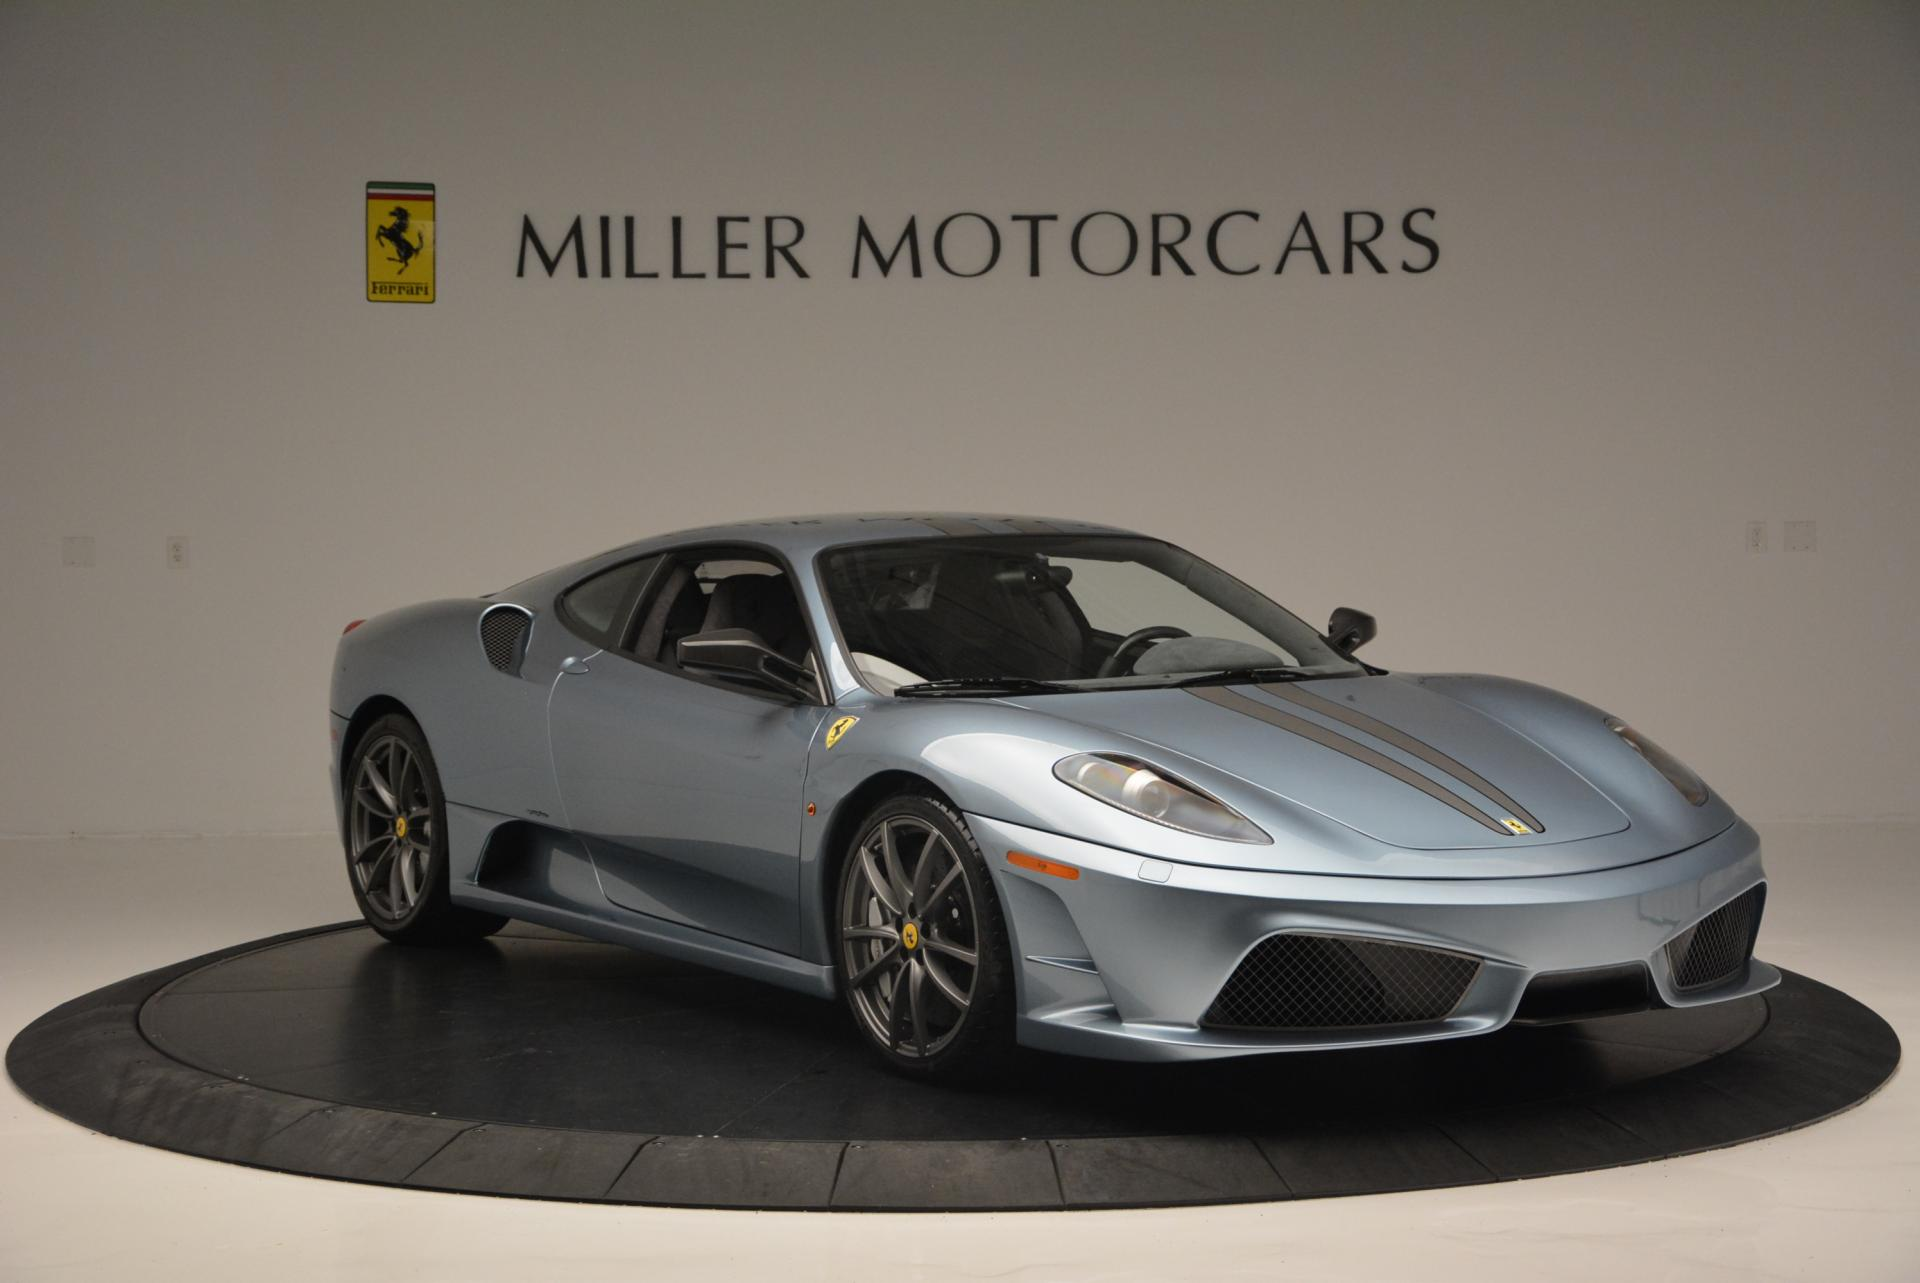 Used 2008 Ferrari F430 Scuderia For Sale In Greenwich, CT 146_p11